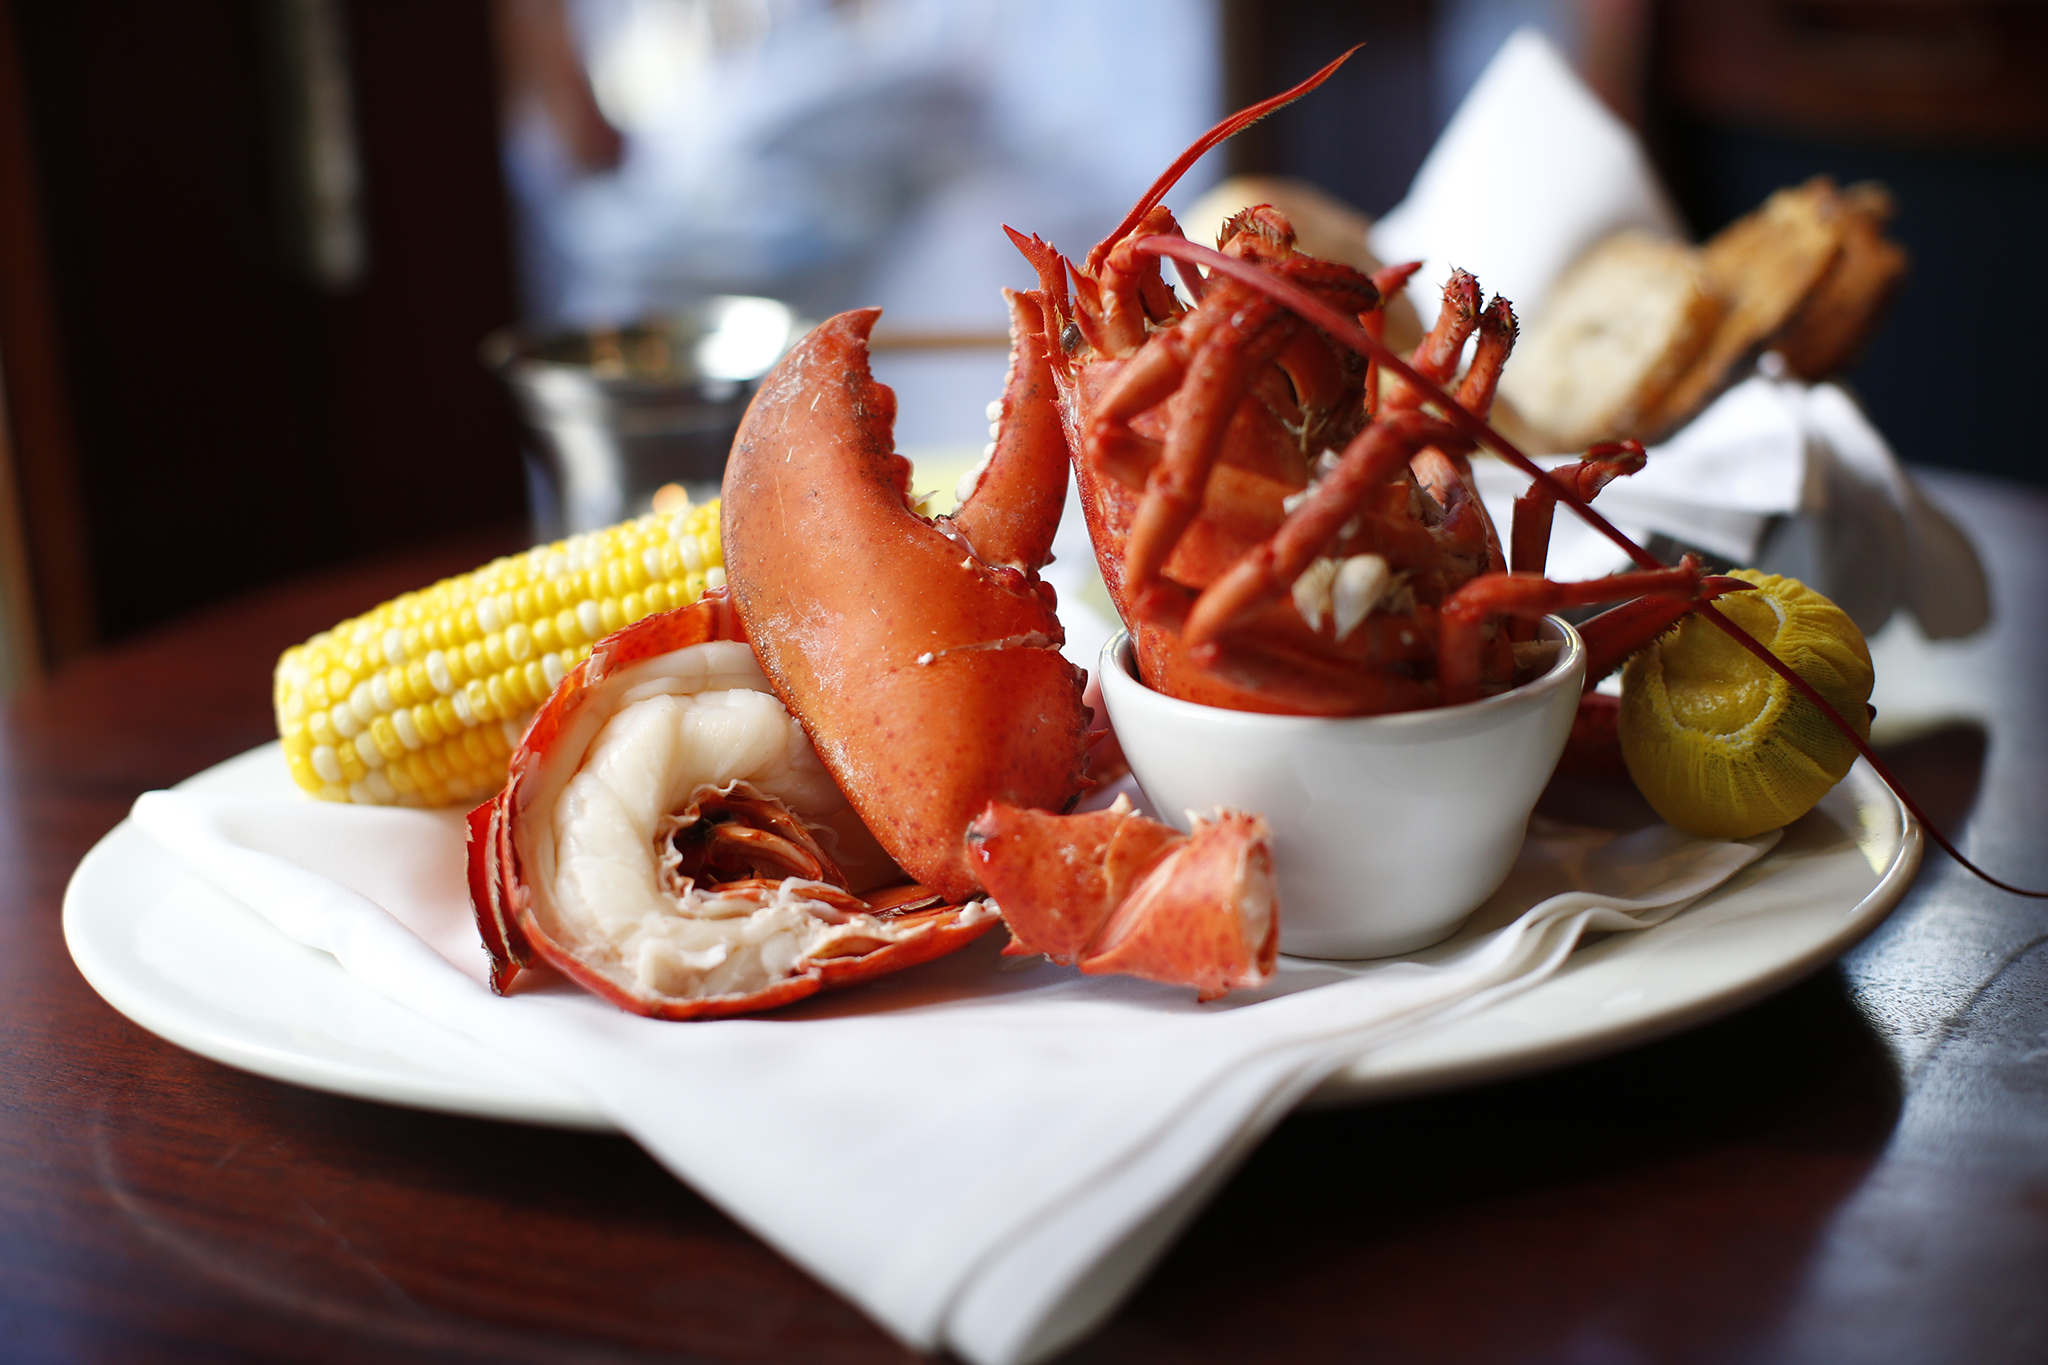 Best seafood restaurants in America for fish, lobster and crab